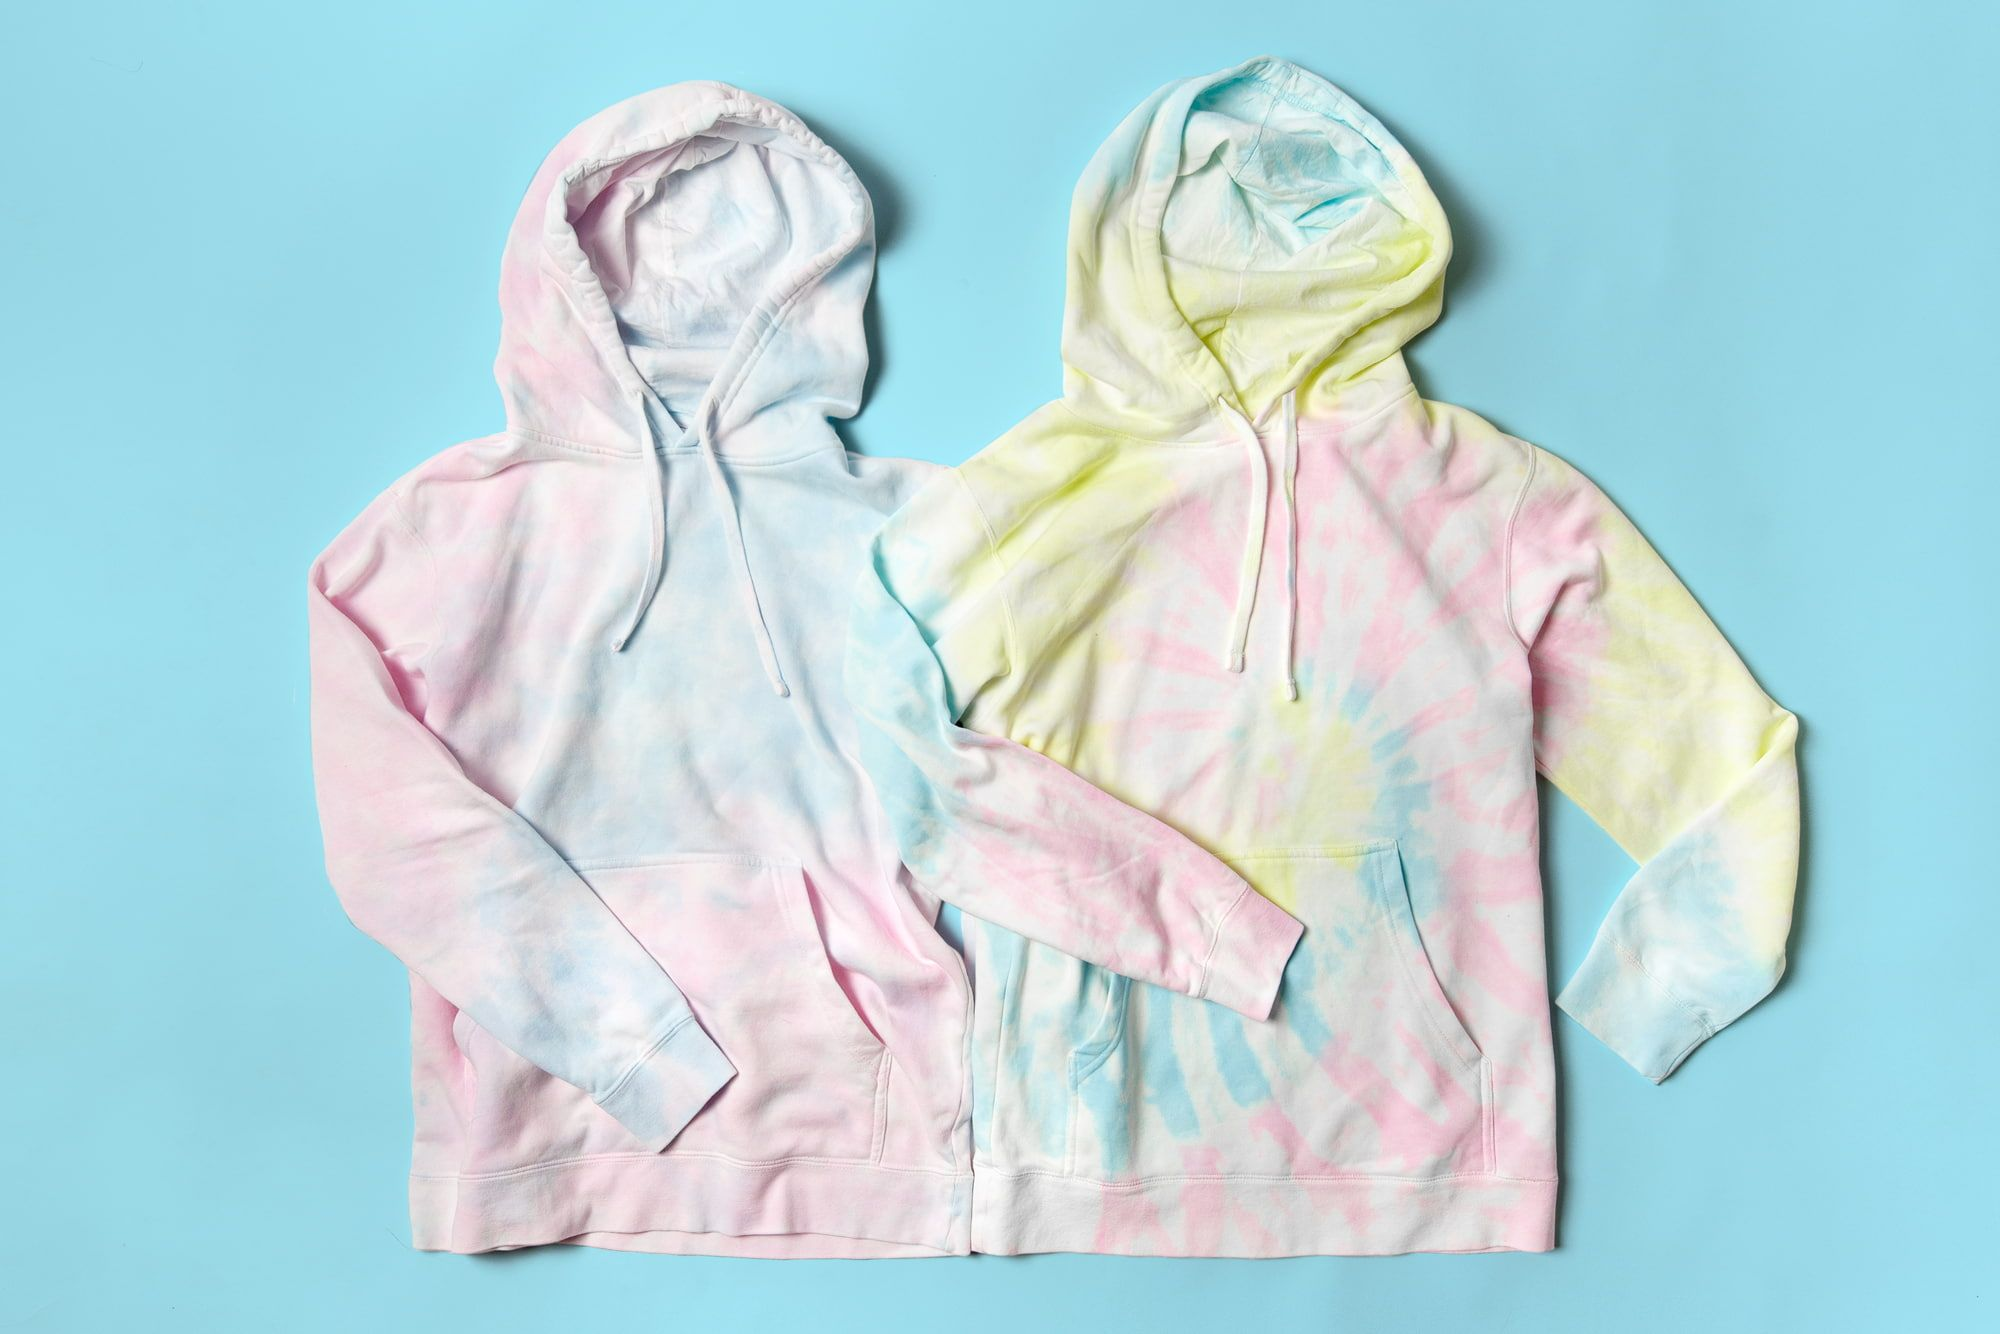 Flatlay image of two tie-dyed hoodies.